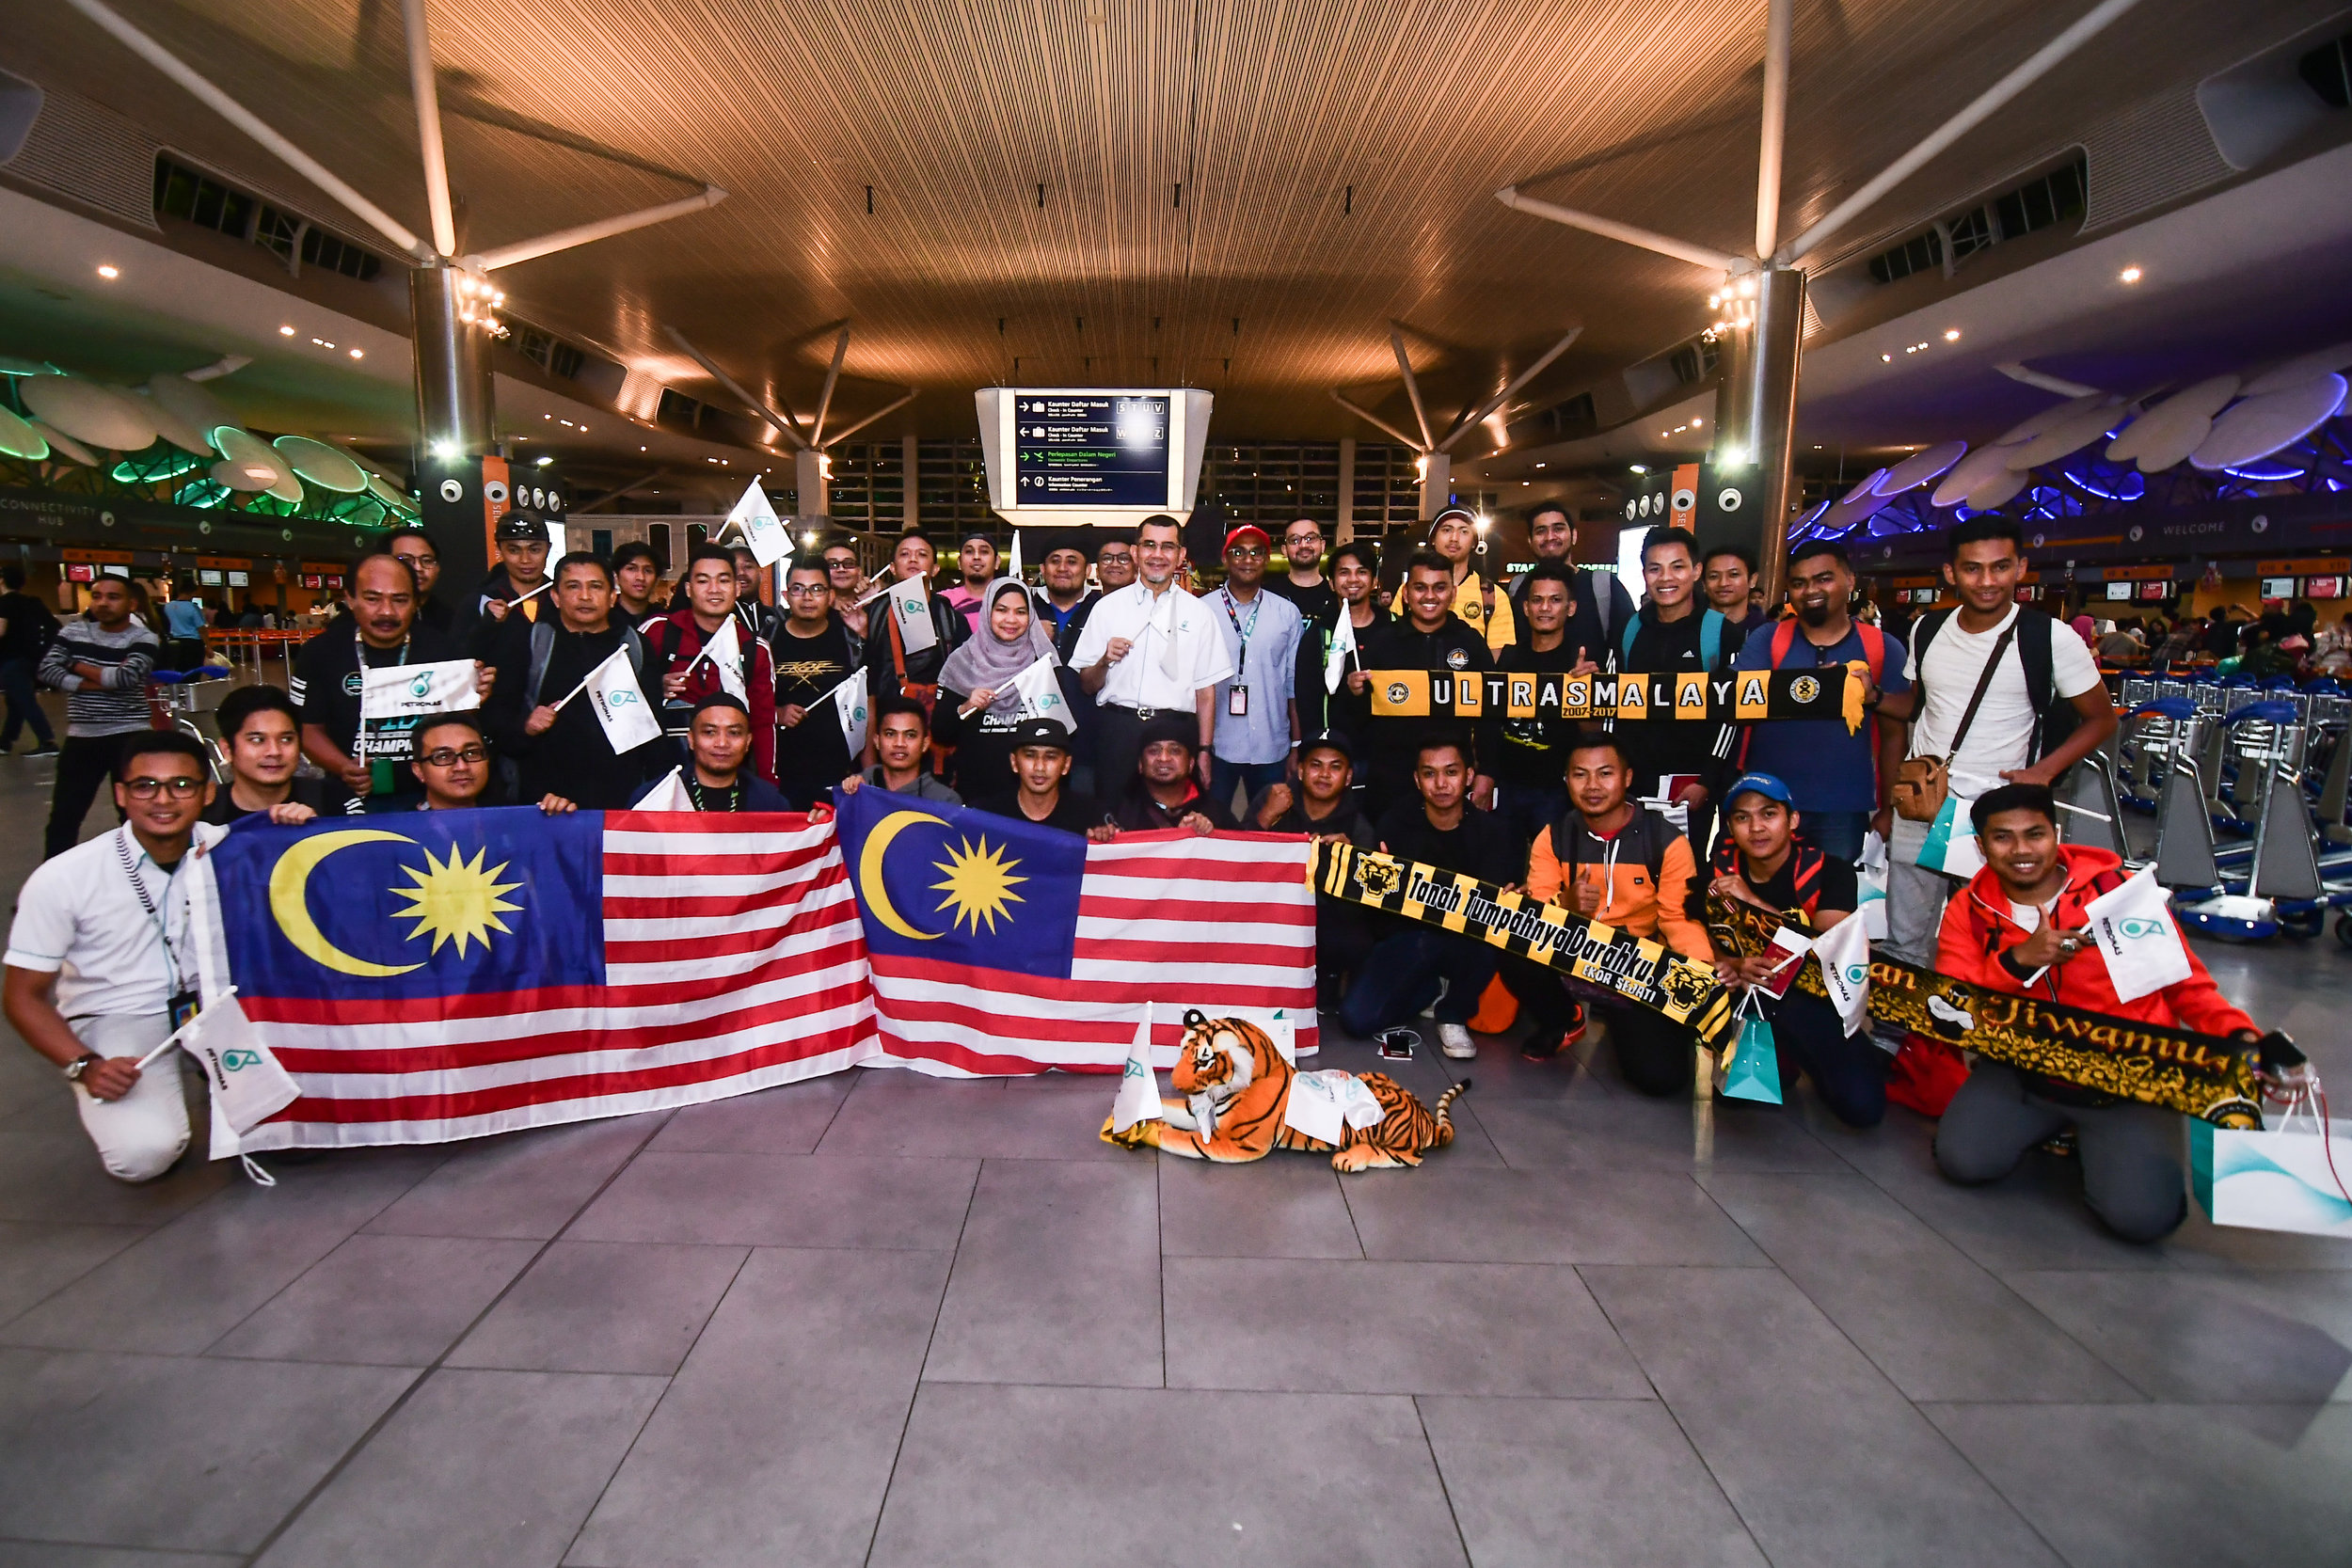 Dato' Sri Syed Zainal Abidin Syed Mohamed Tahir , Managing Director and CEO of PETRONAS Dagangan Berhad [centre in white] and Bo Lingam, AirAsia Deputy Group CEO (Airline Business) [centre right] sending off the Harimau Malaya supporters on AirAsia AK9336 to Hanoi at klia2.